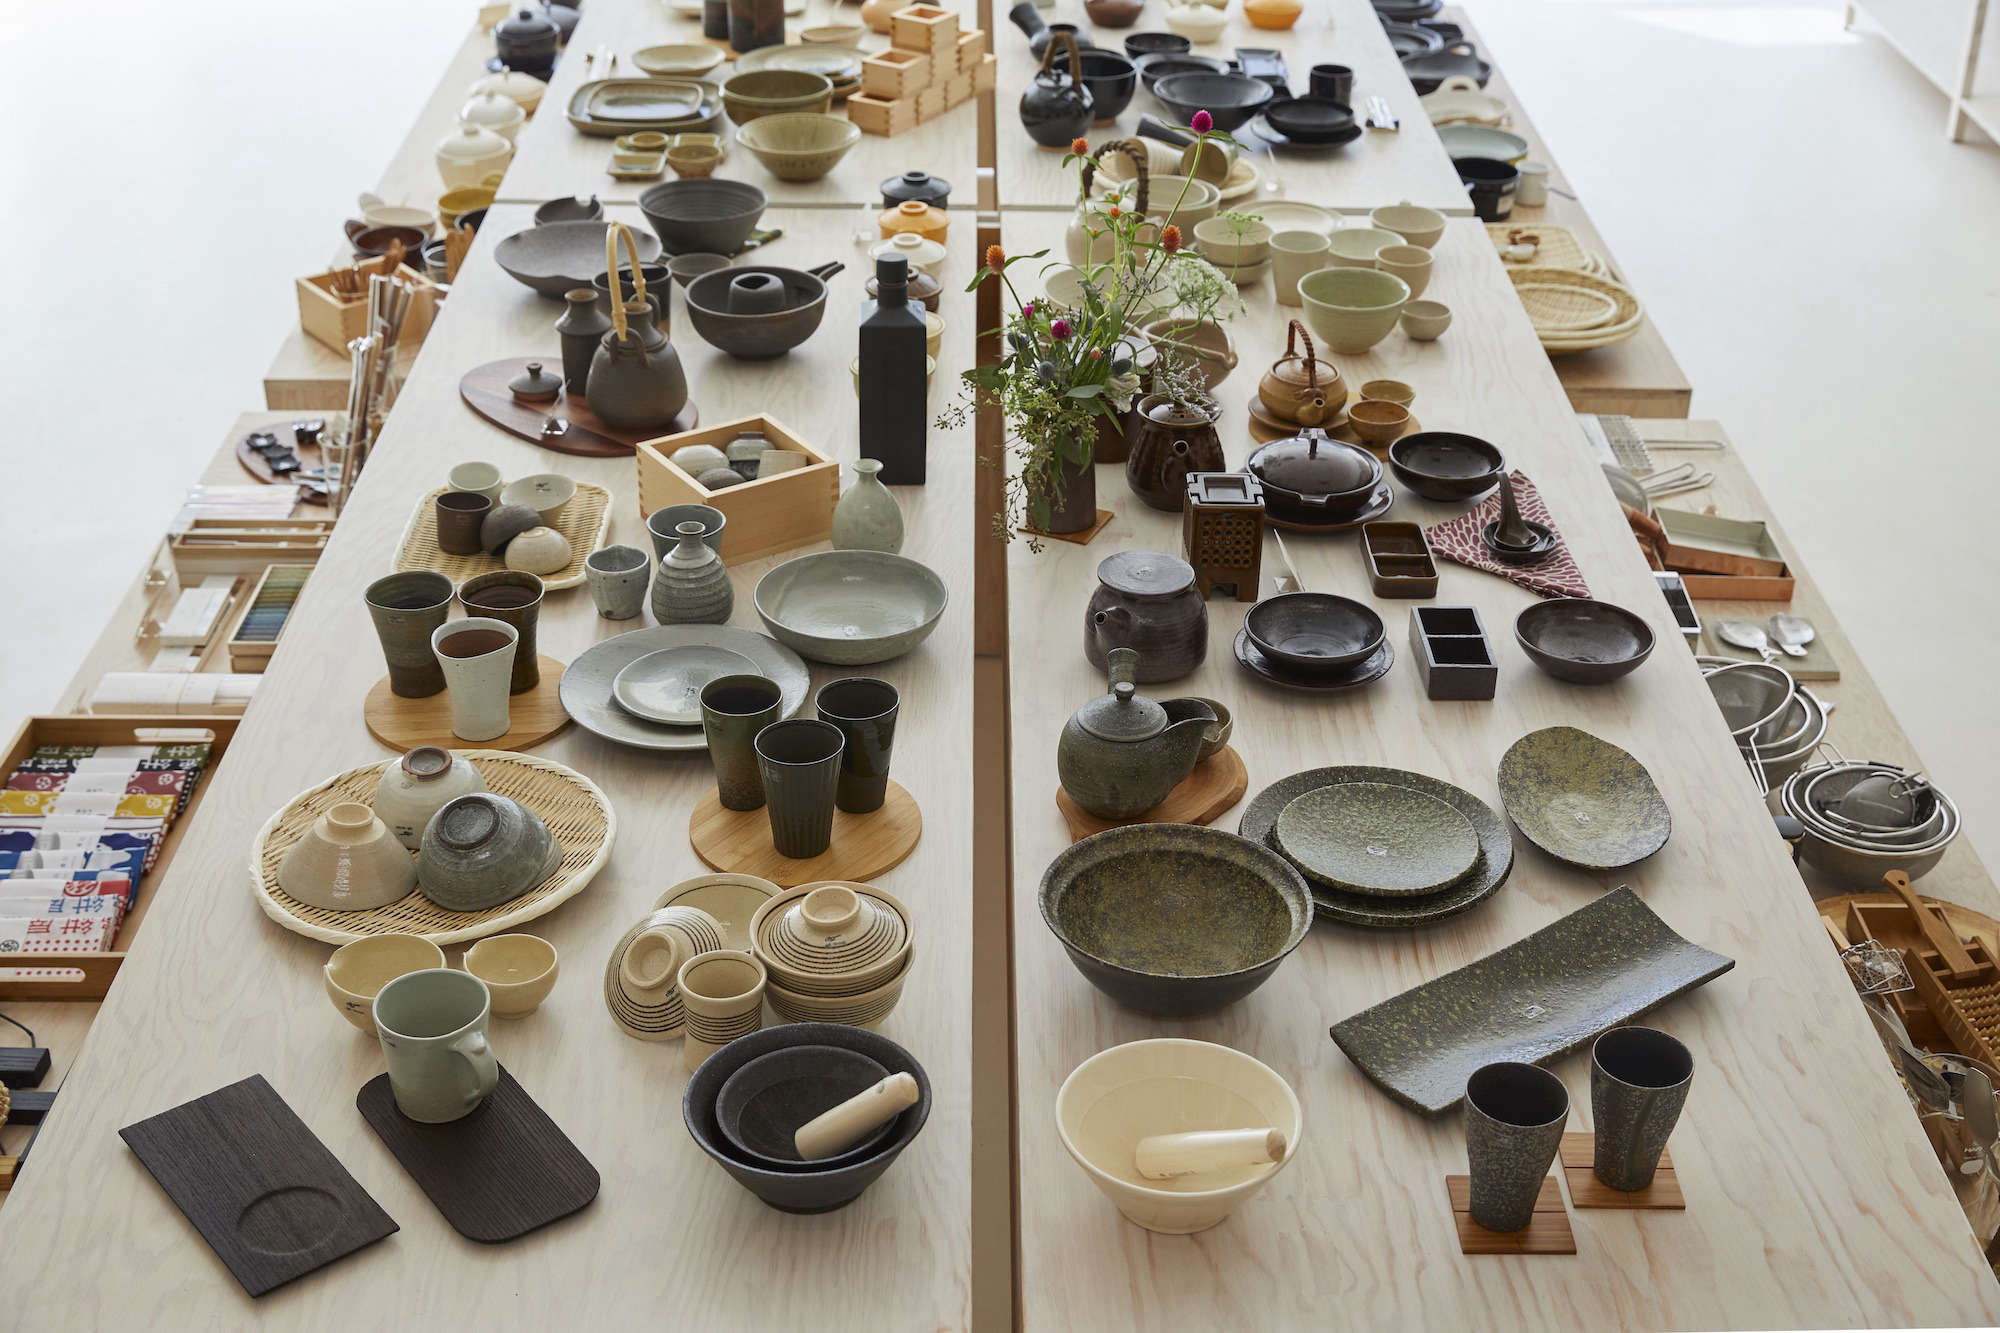 20 Best Online Shops for Japanese Housewares Design - Remodelista